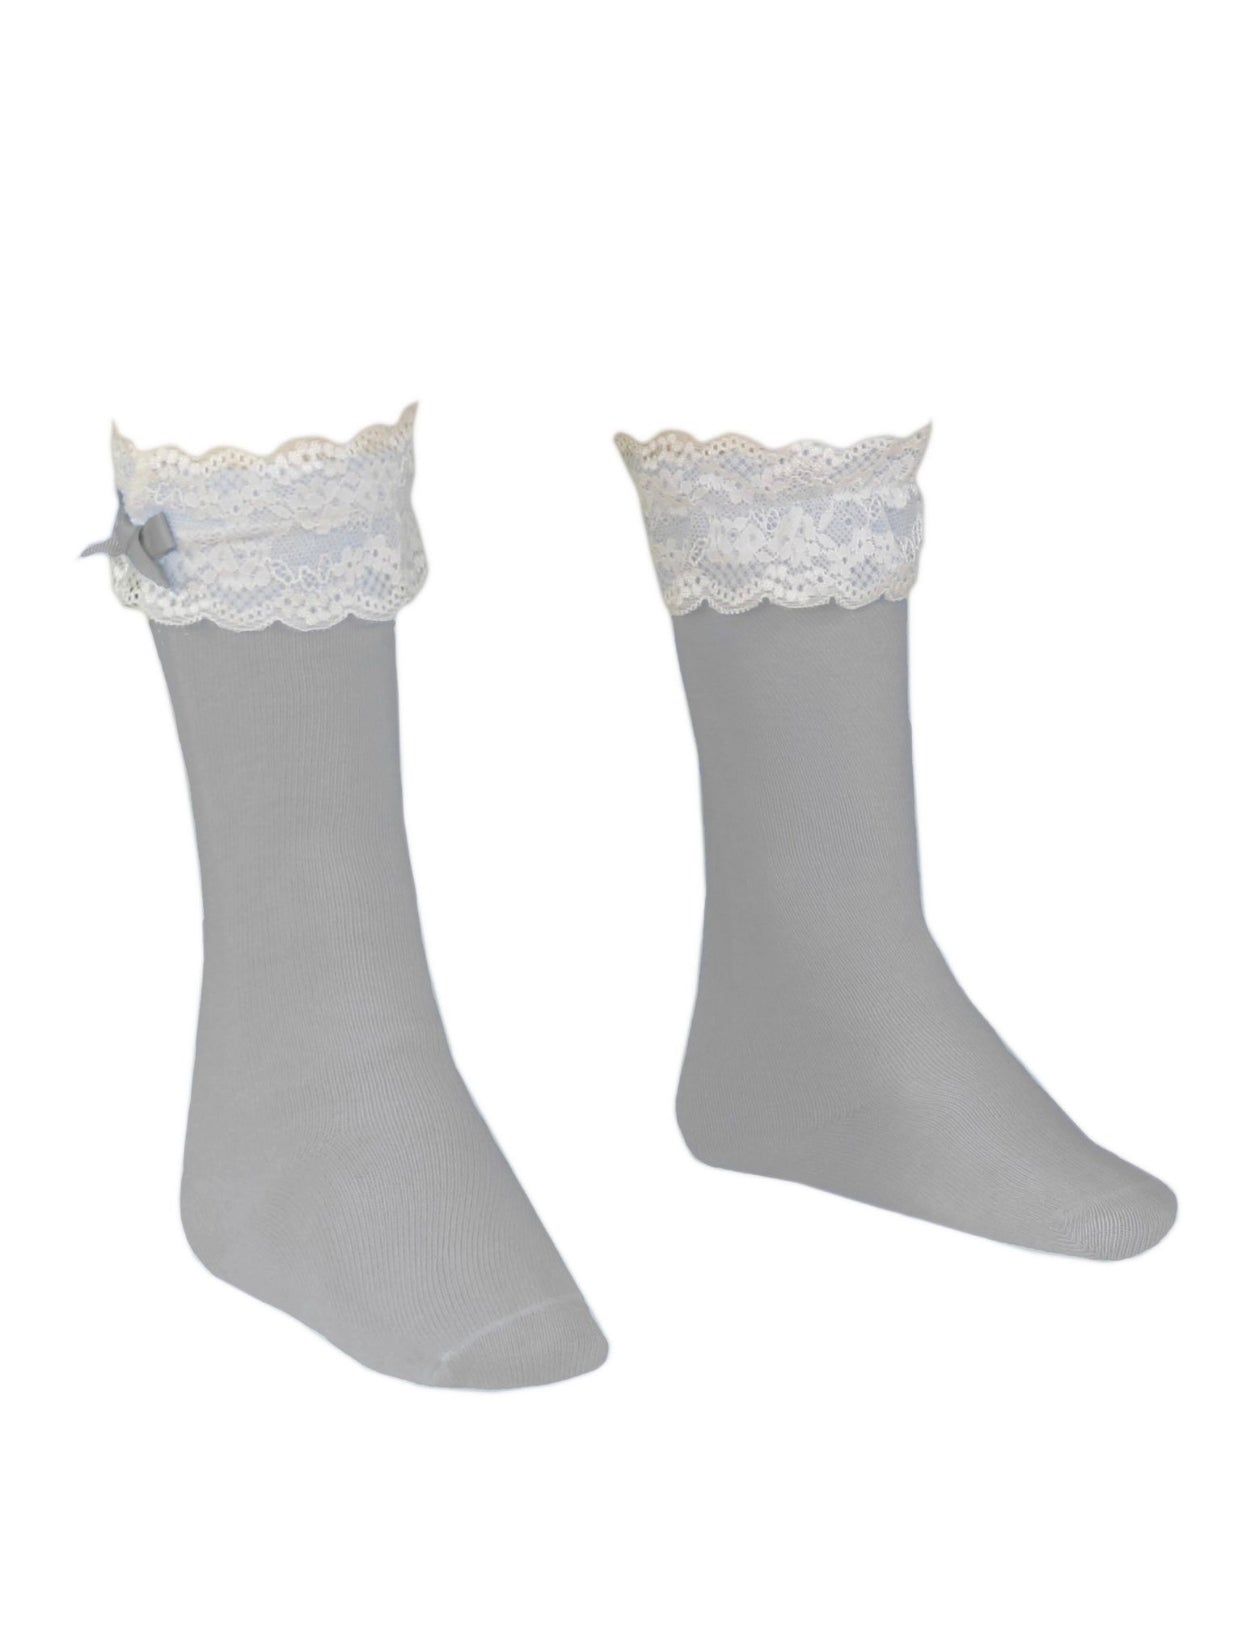 MIRANDA Grey Knee high socks with frill details